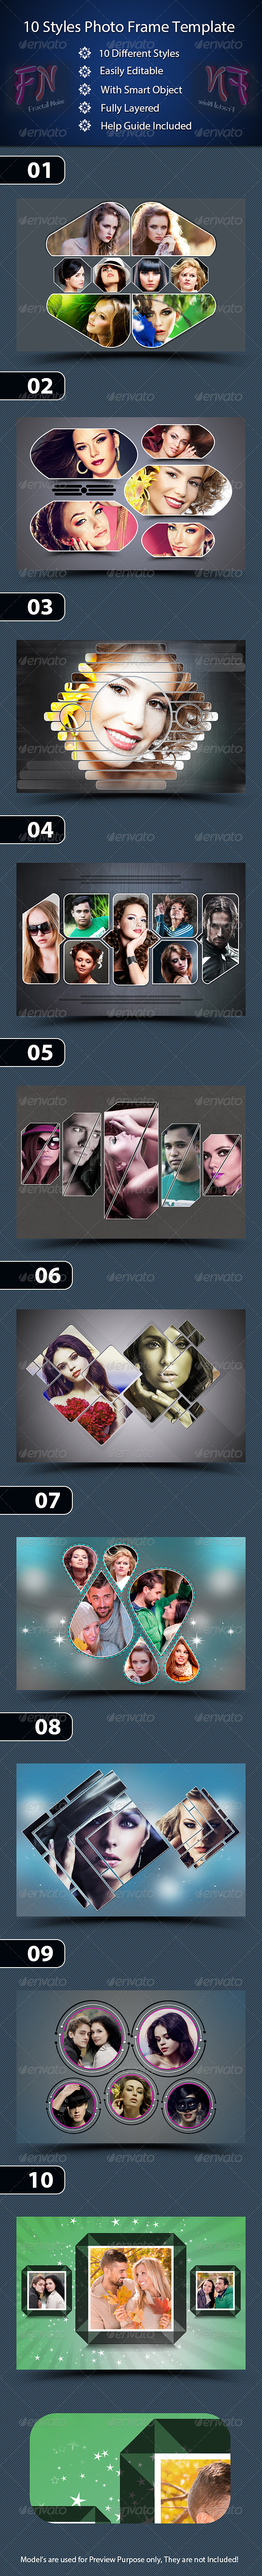 GraphicRiver 10 Styles Photo Frame Template 7439822